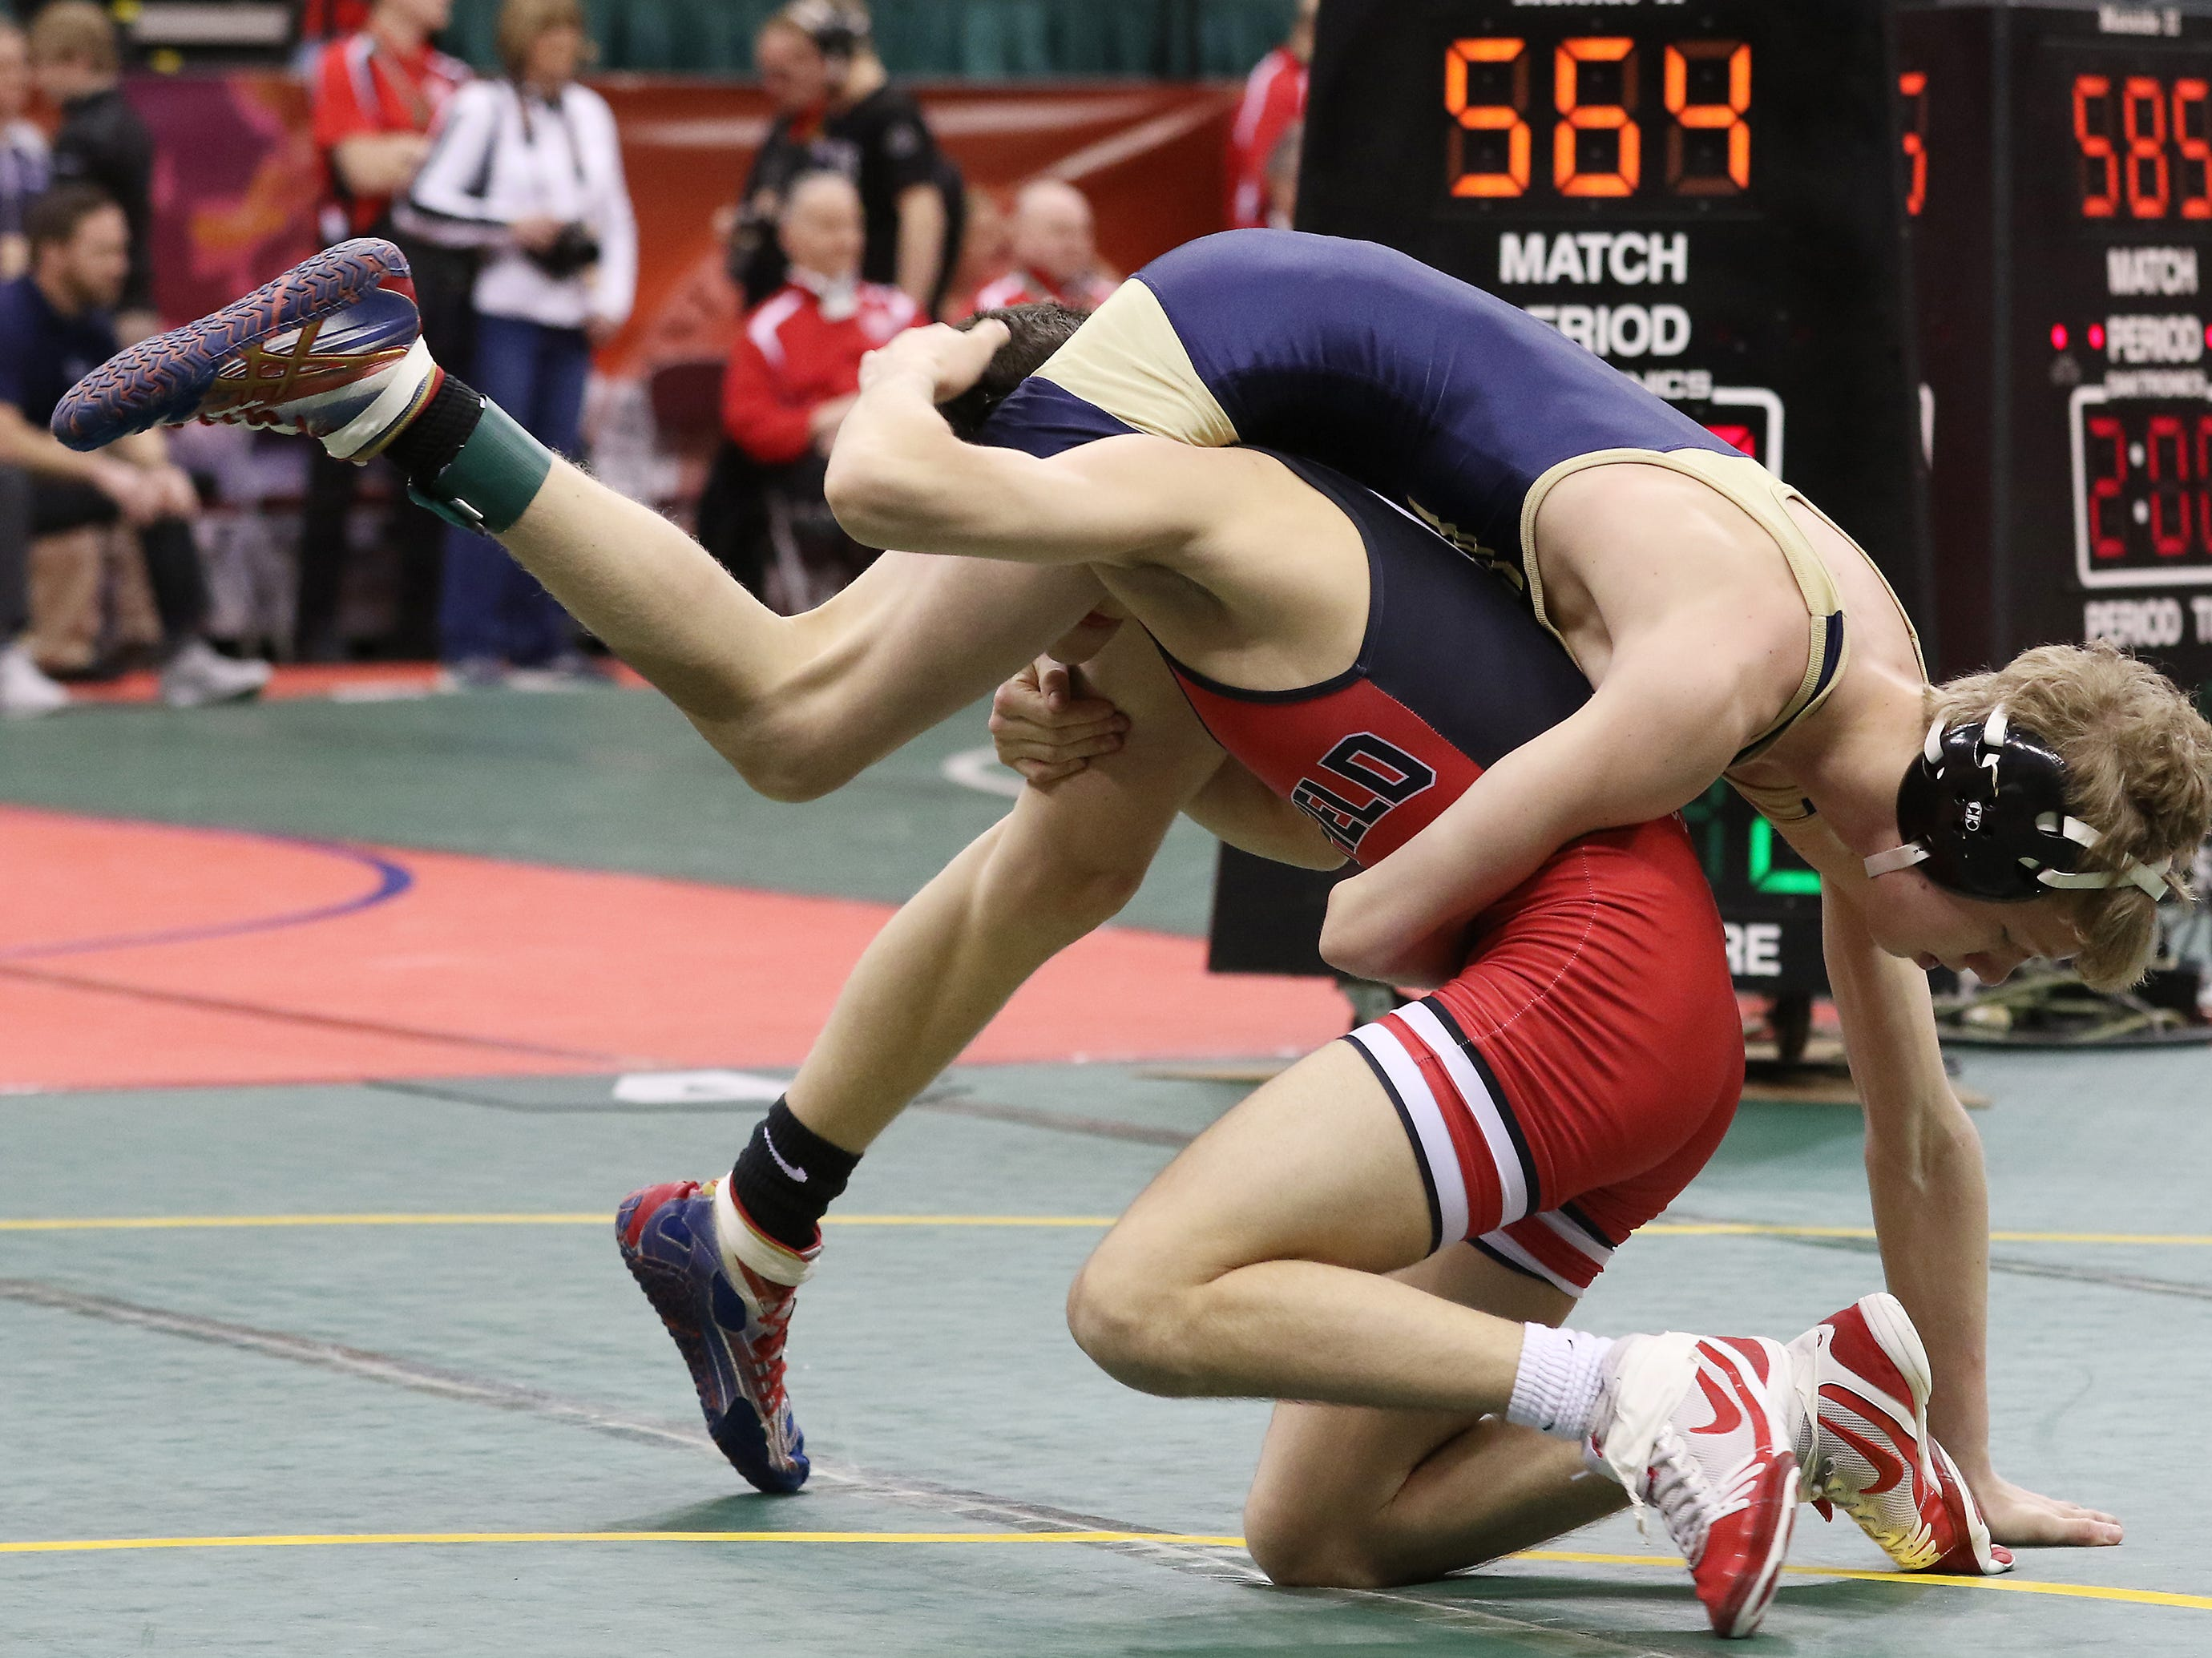 Caldonia River Valley's Blake Cerny wrestles Canfield's Nick Barber in the 106 pound weight class at the Division II state wrestling tournament on Friday.